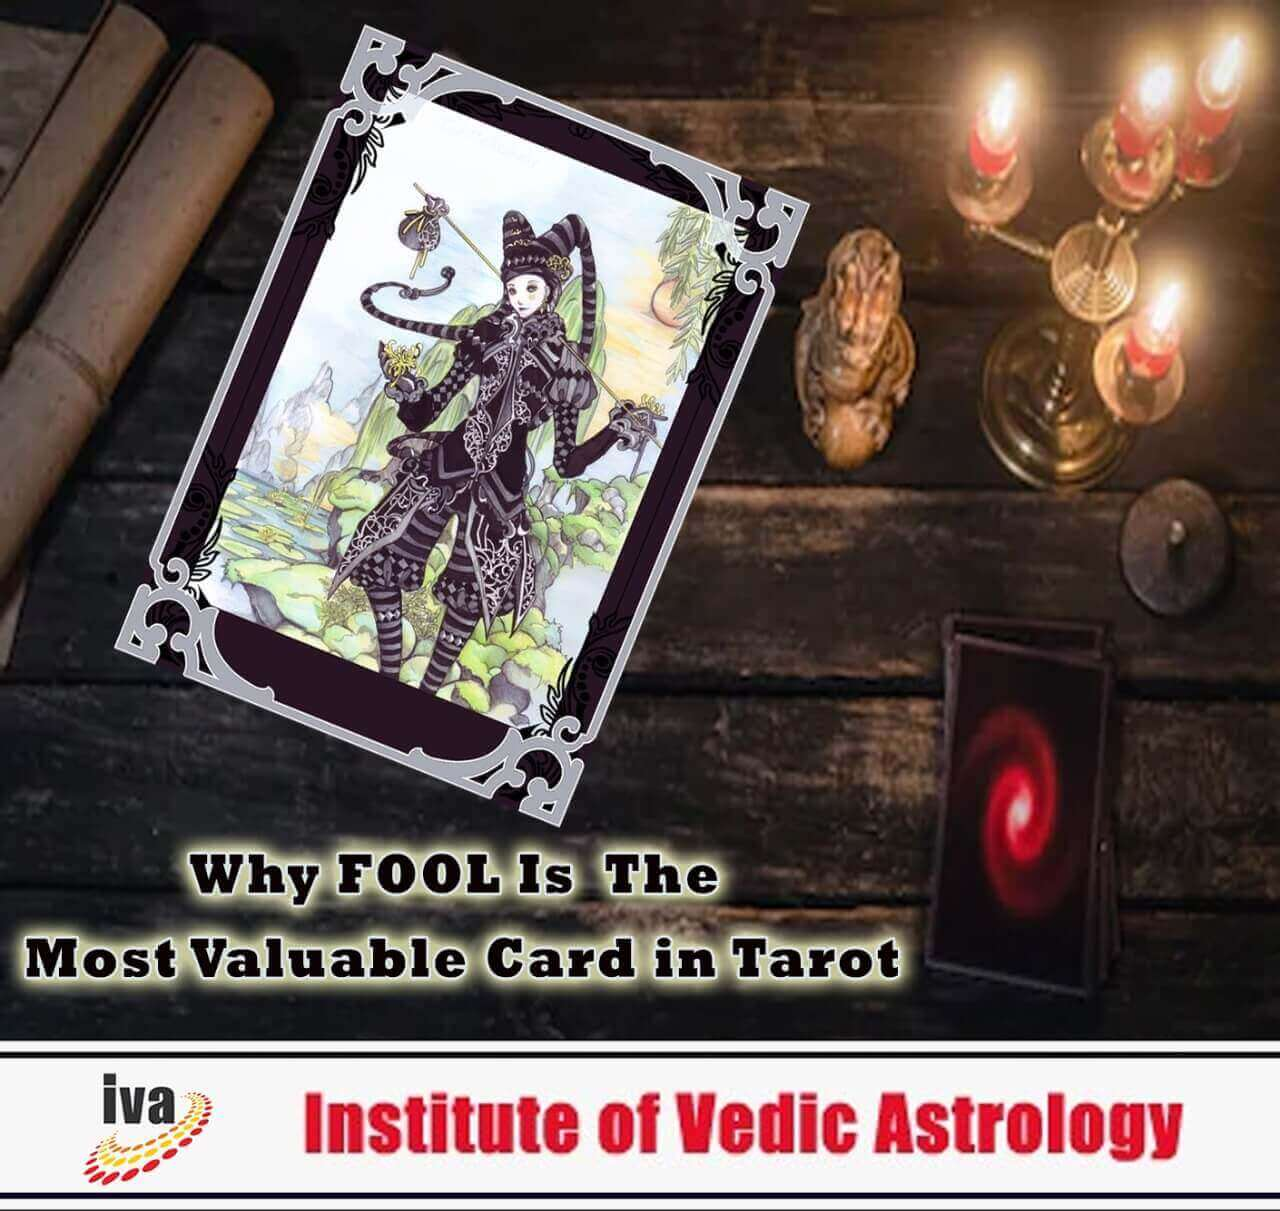 Why Fool is the most Valuable Card